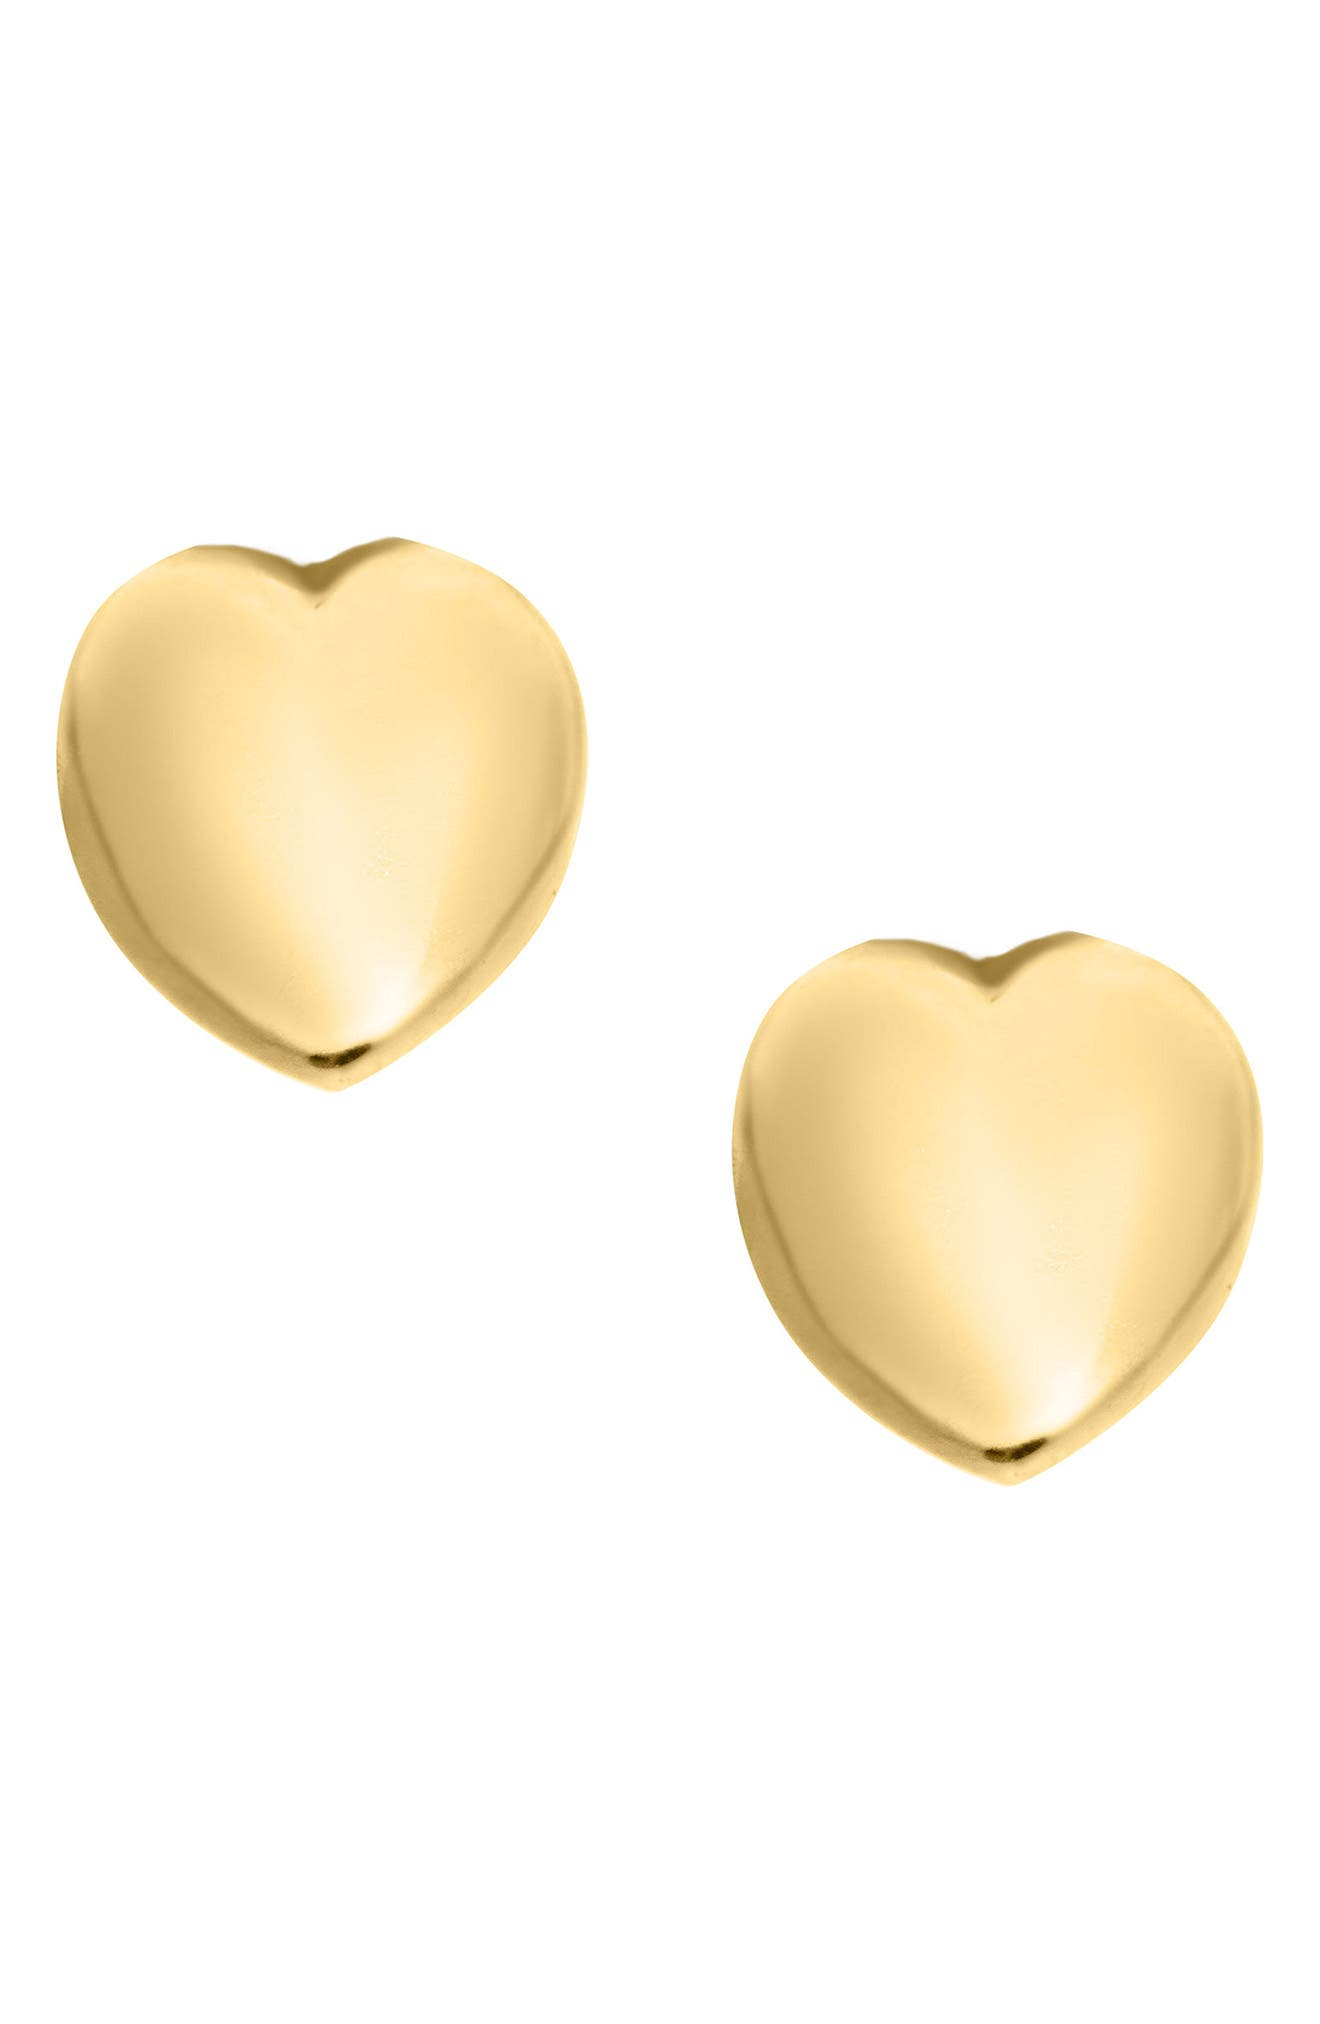 14k Gold Puffed Heart Earrings,                         Main,                         color, GOLD